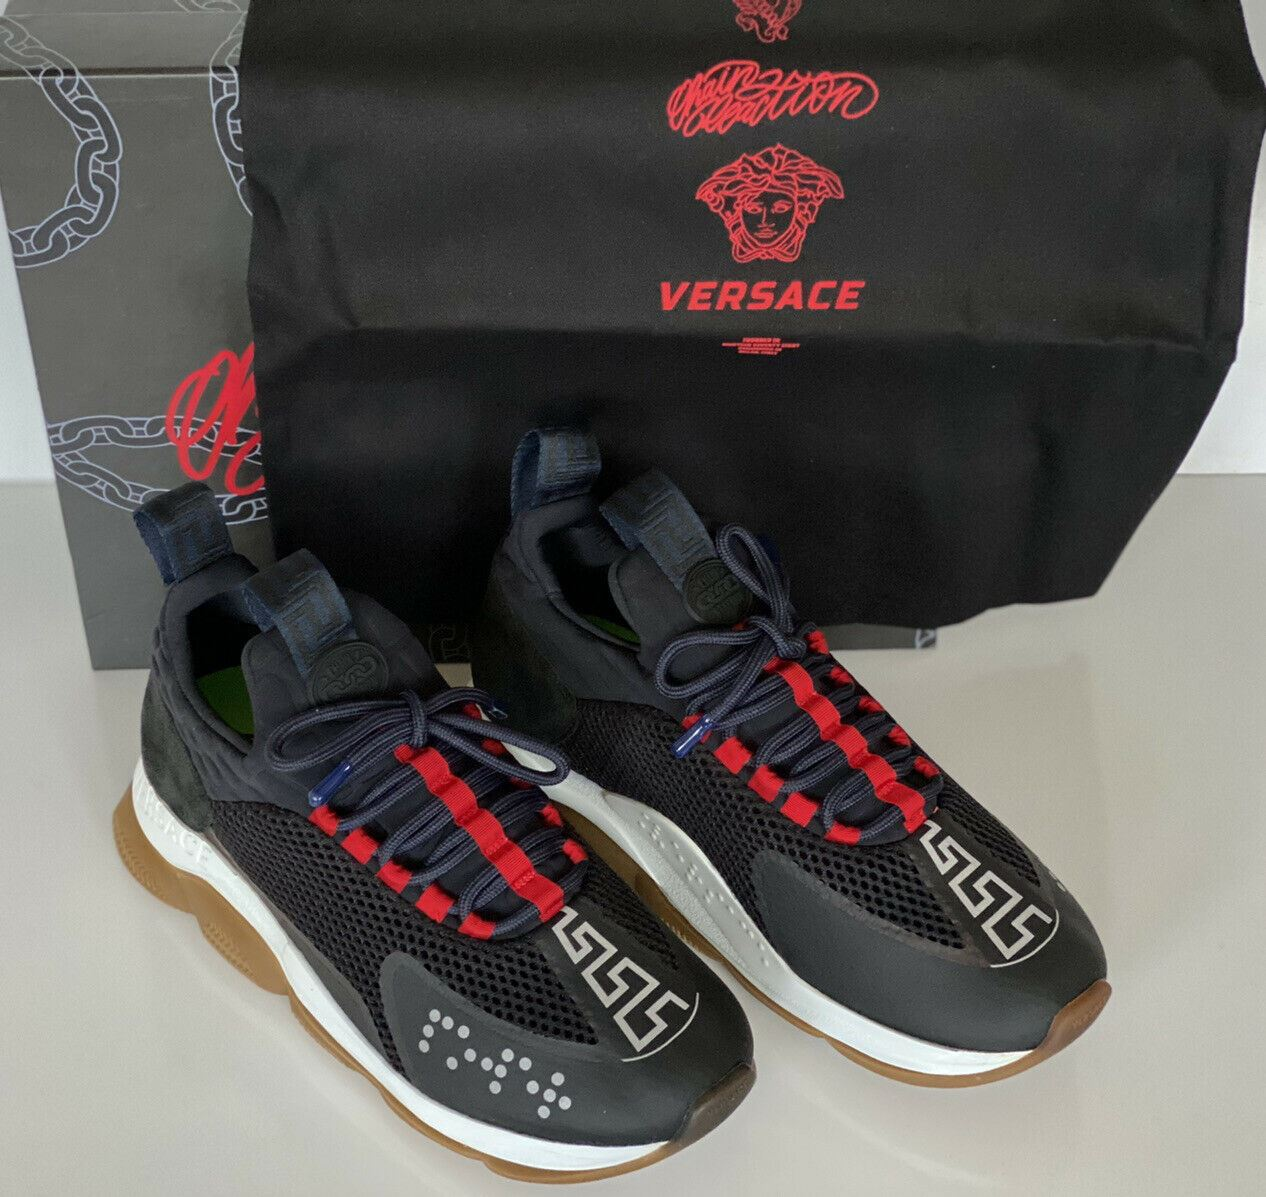 NIB Versace Black Chain Reaction Mens Sneakers 9.5 US (42.5 EU) Made in Italy